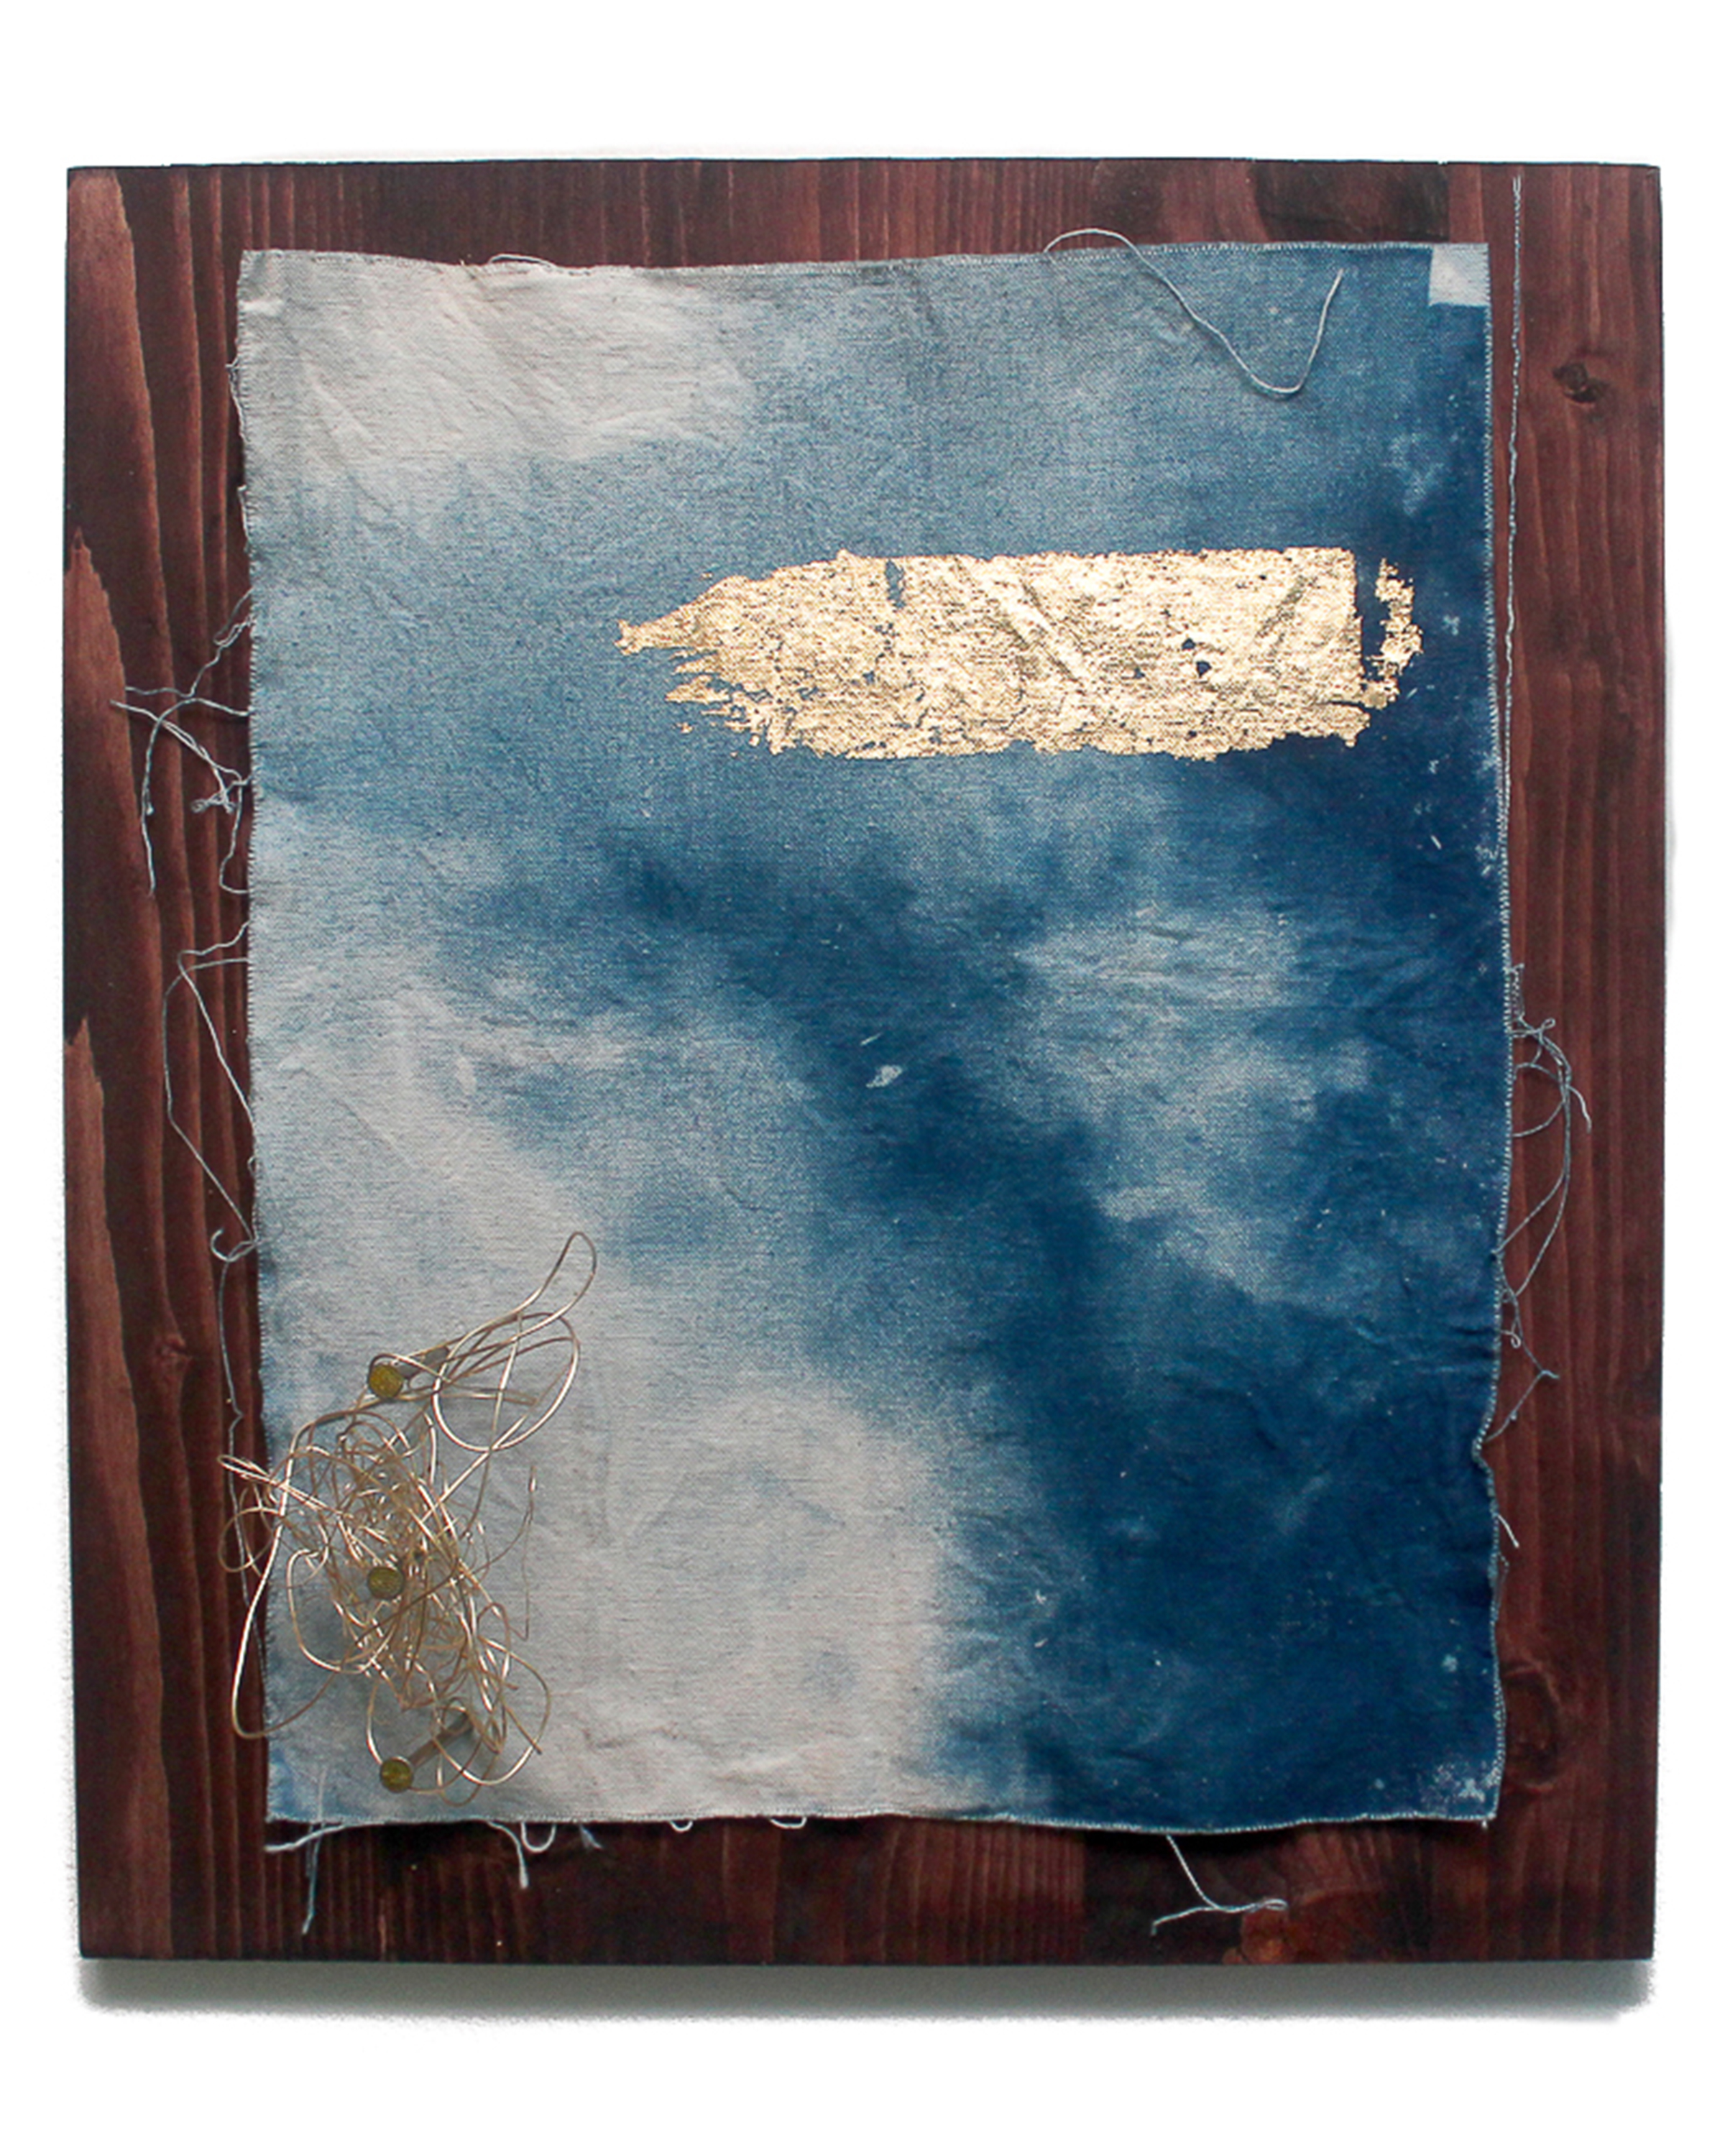 Jeremiah Morris - _Guess My Silver Lining is Gold_ - 16x20 - Cyanotype photographic print on canvas, gold leaf, brass wire, nails, wood - 2016 - $650.jpg